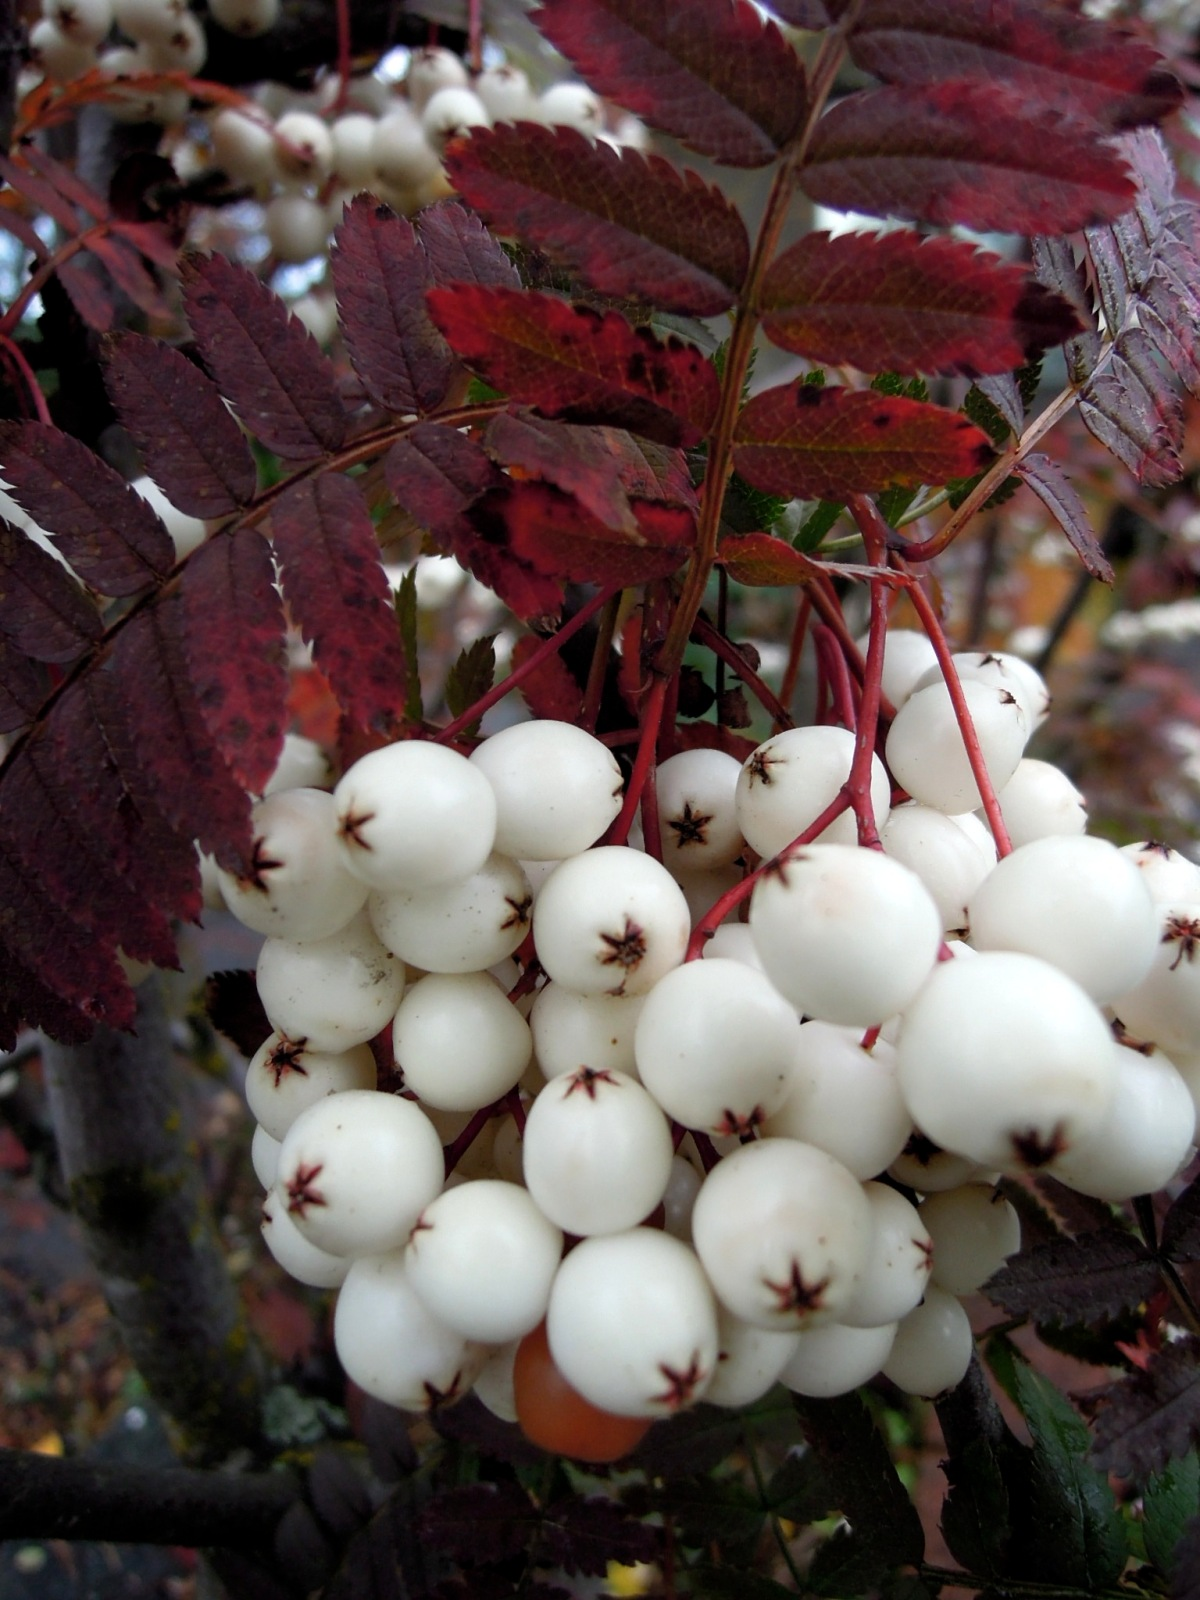 White berries with red foliage